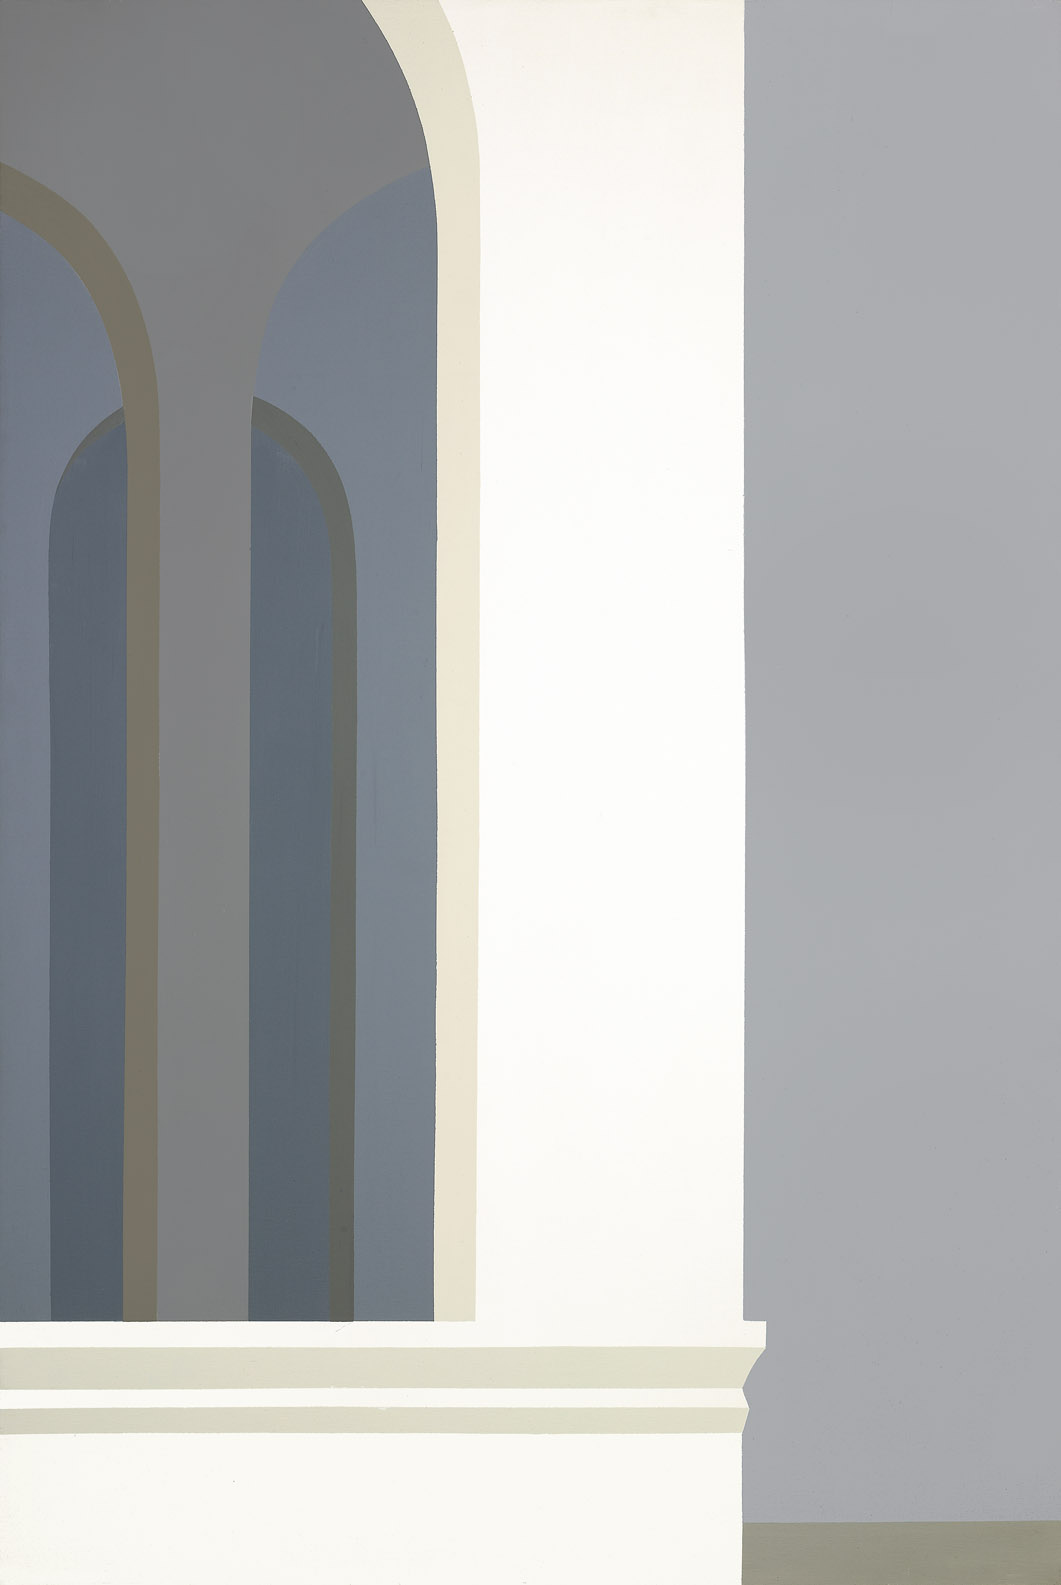 Untitled (Classic Landscape, March) , 1973 acrylic on canvas 60 x 40 inches; 152.4 x 101.6 centimeters